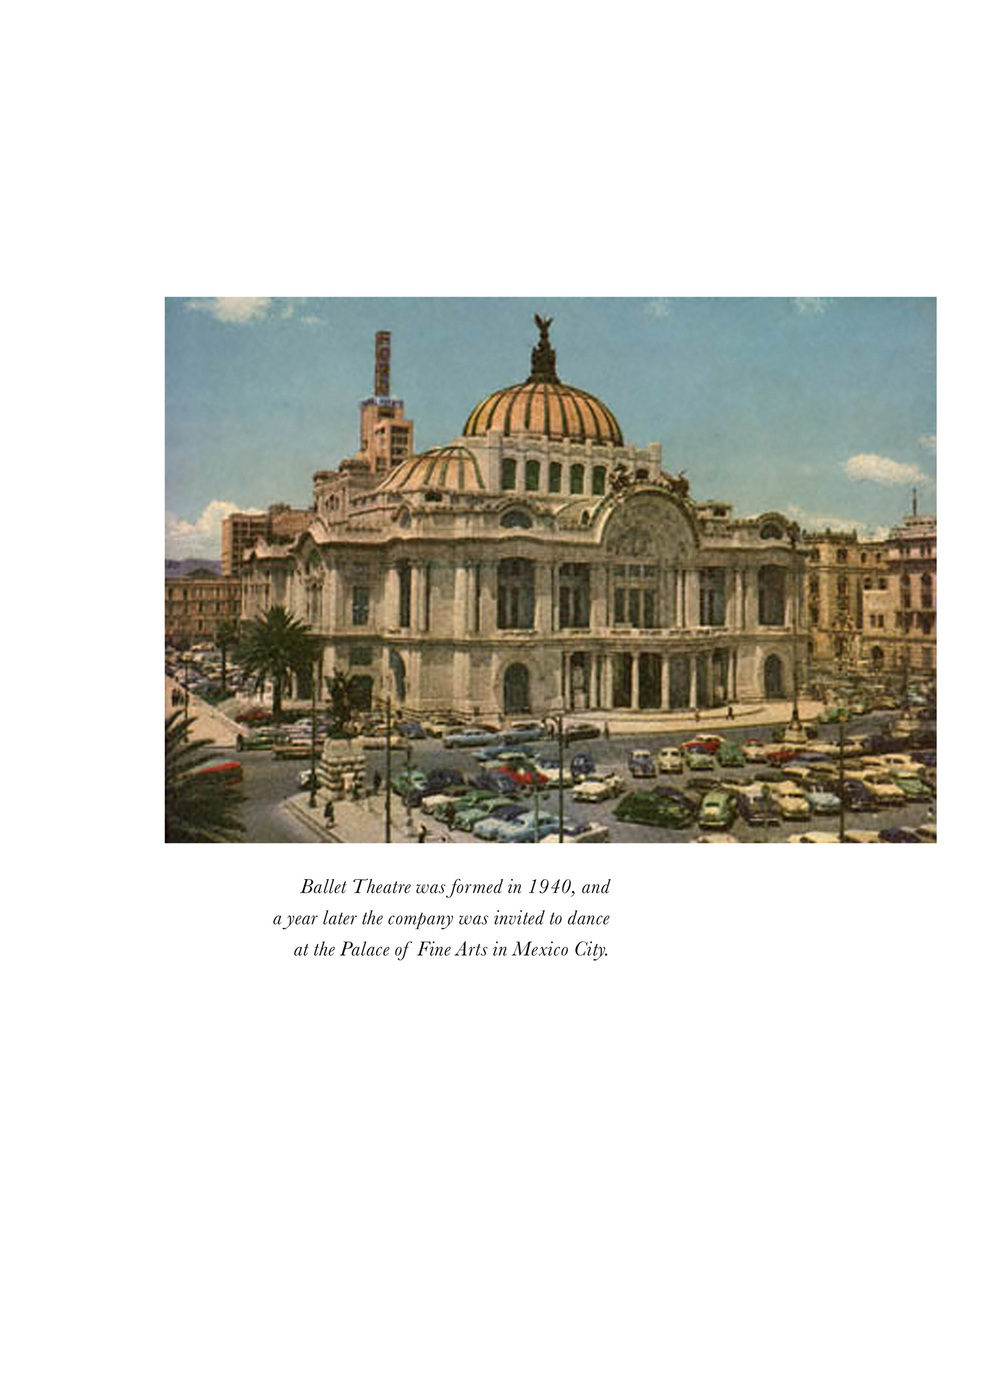 mexico book composite7.jpg